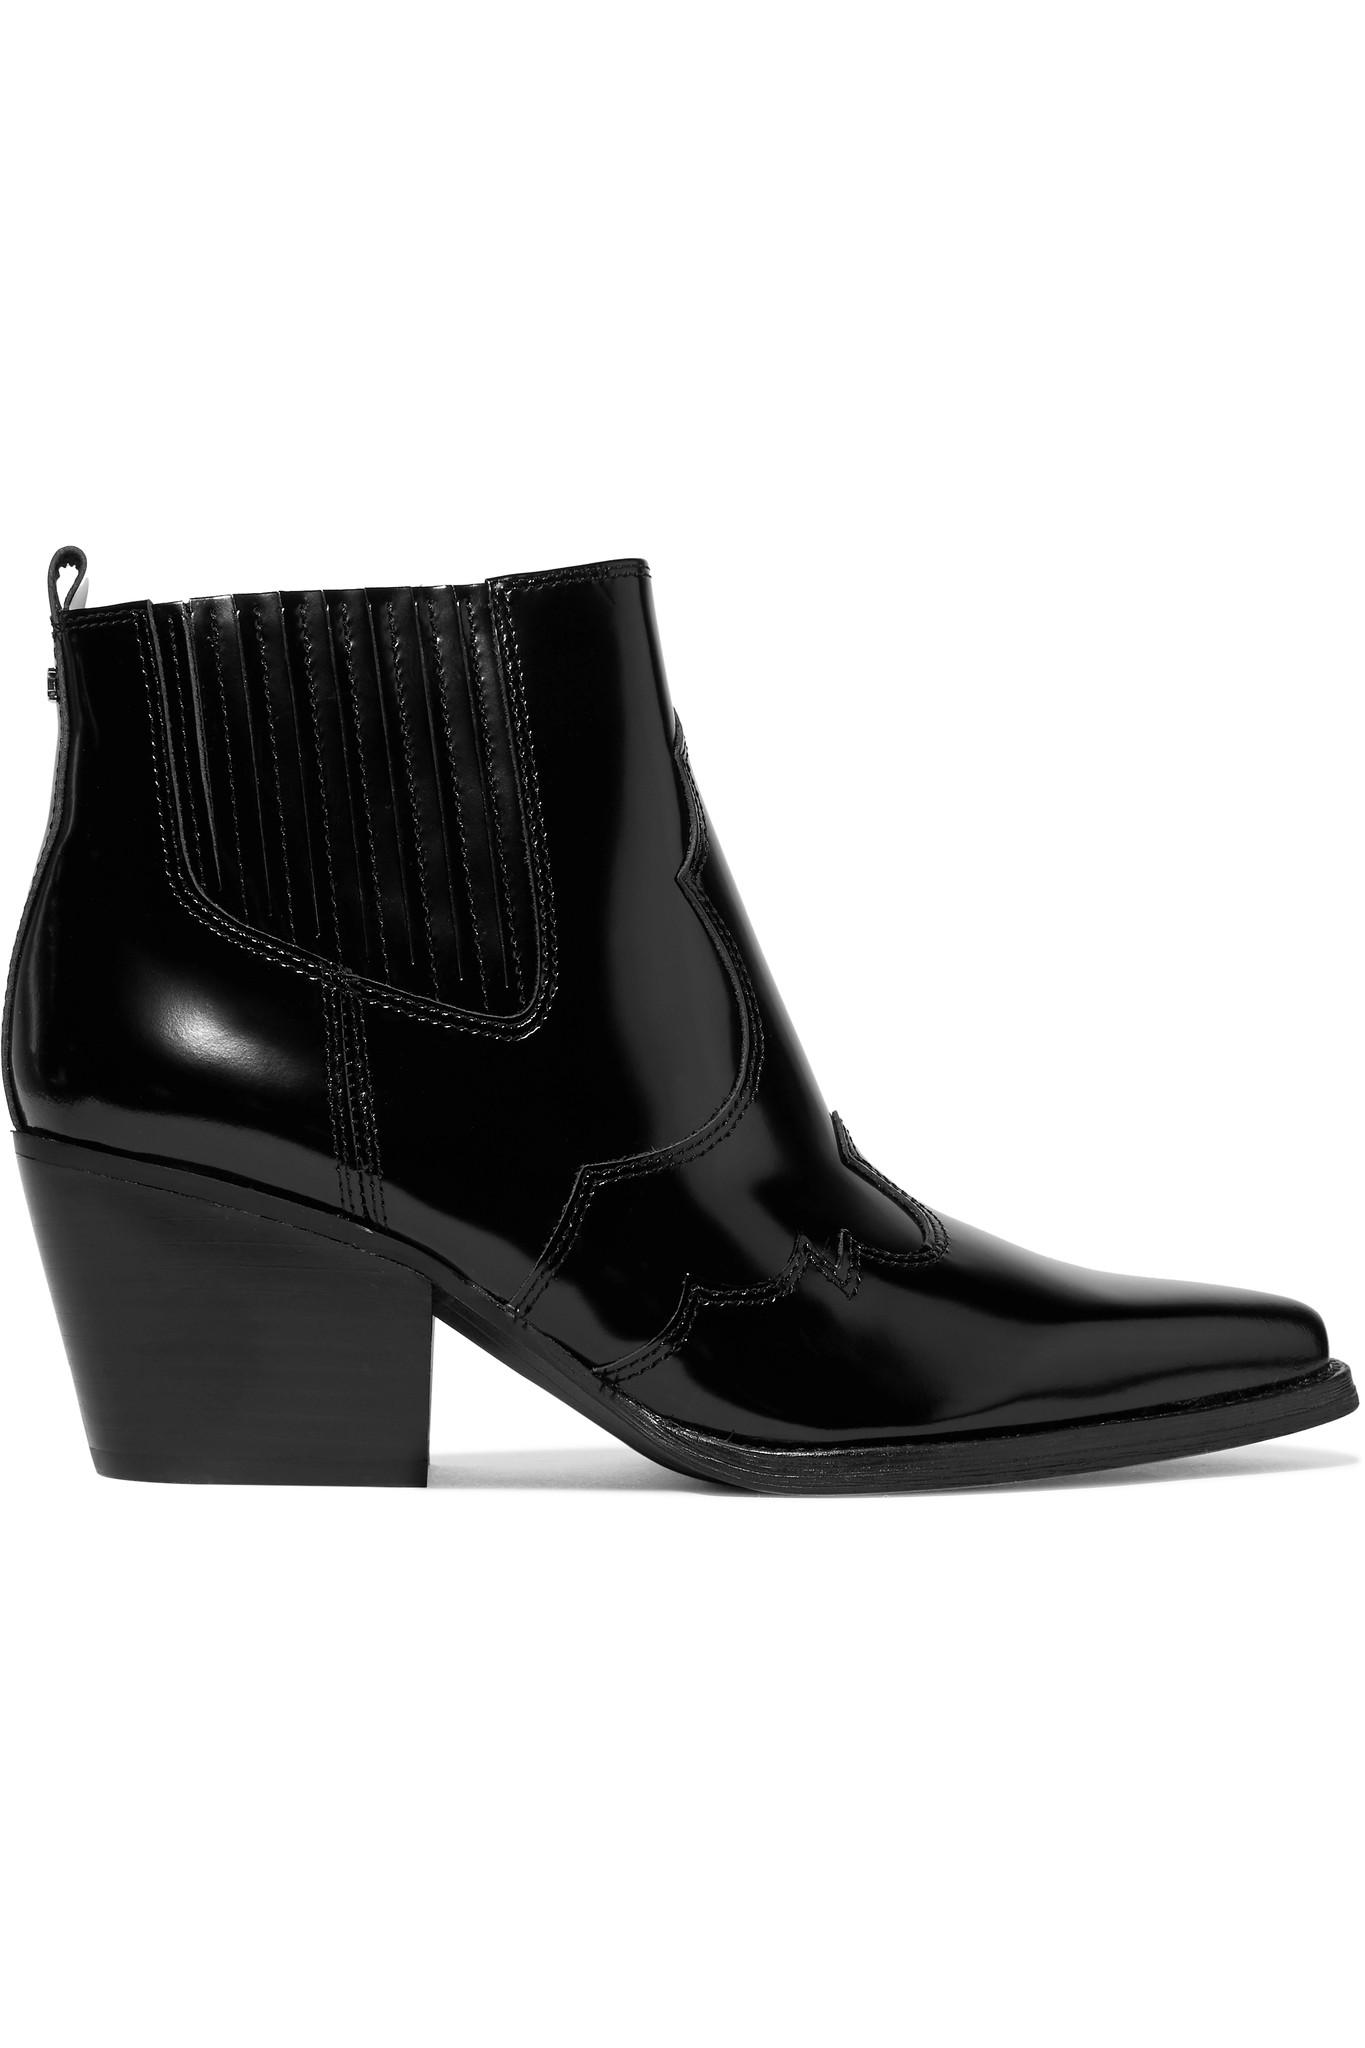 51f0a961b9f9a Lyst - Sam Edelman Winona Glossed-leather Ankle Boots in Black ...